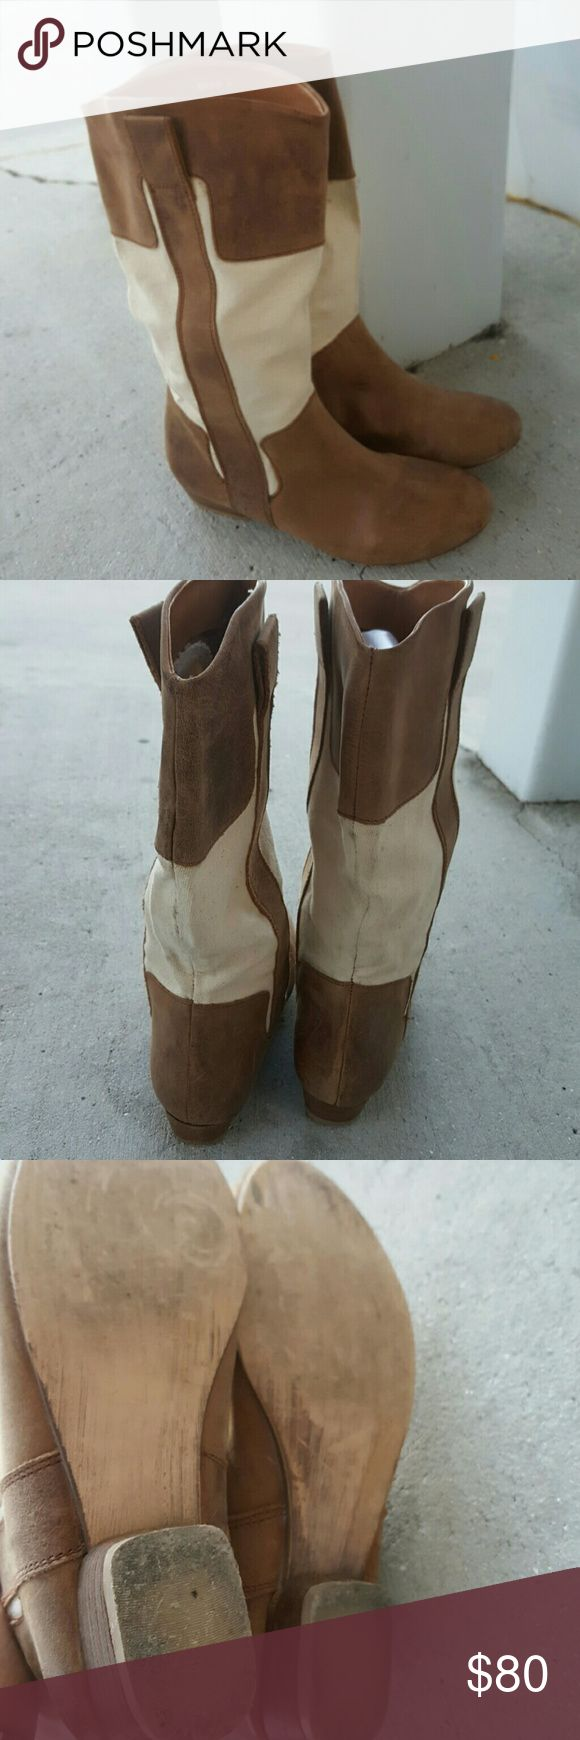 "DEENA &  OZZY BOOTS Canvas and leather boots 1""heel  Size 6 Pre-loved priced accordingly worn well Deena & Ozzy Shoes Heeled Boots"